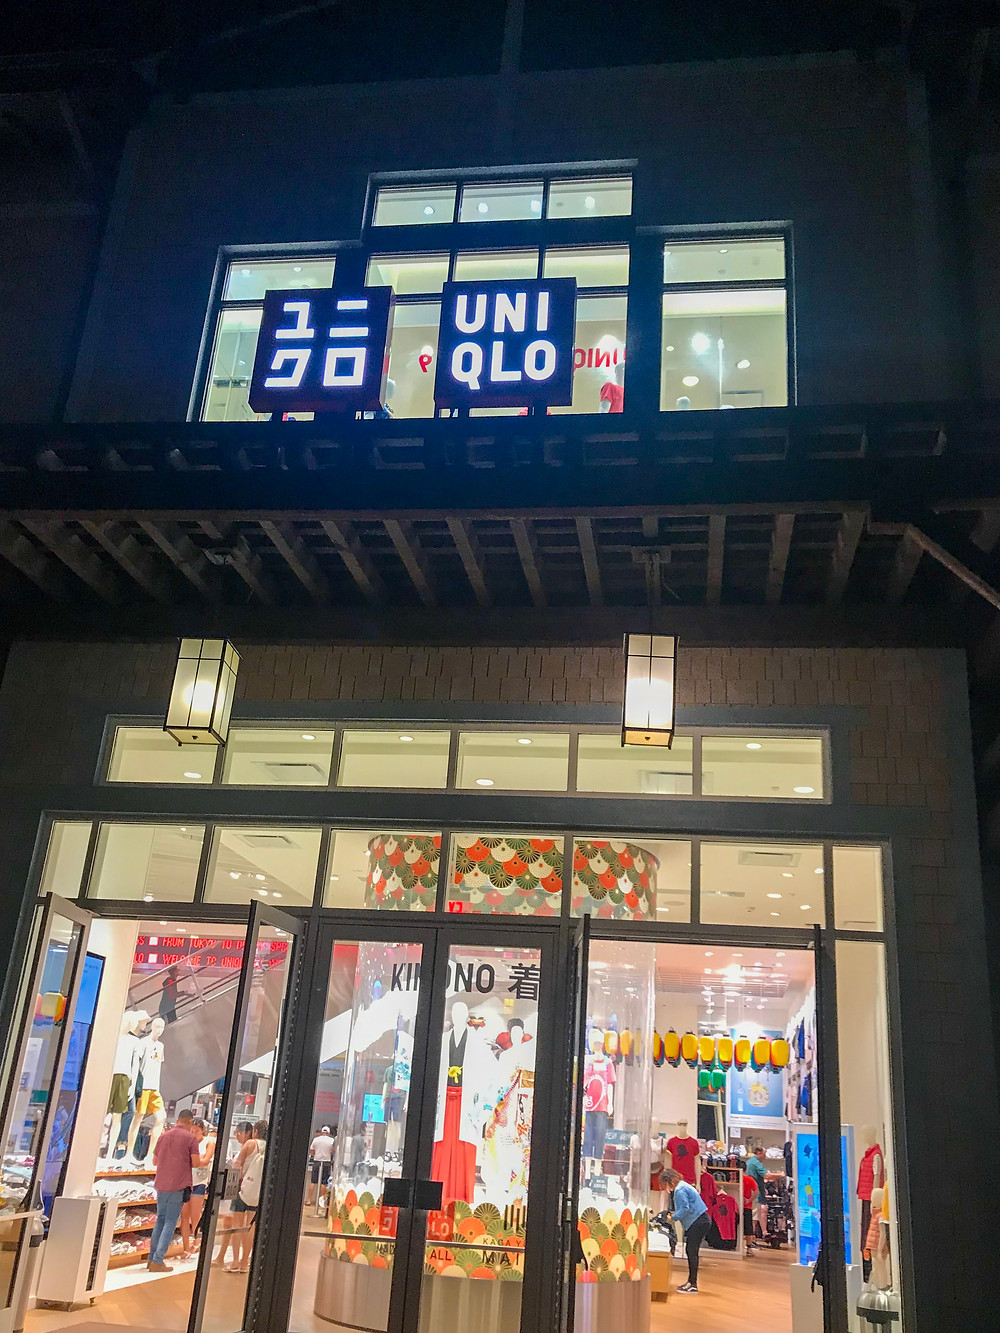 Great exclusive Disney merchandise at Uniqlo at Disney Springs